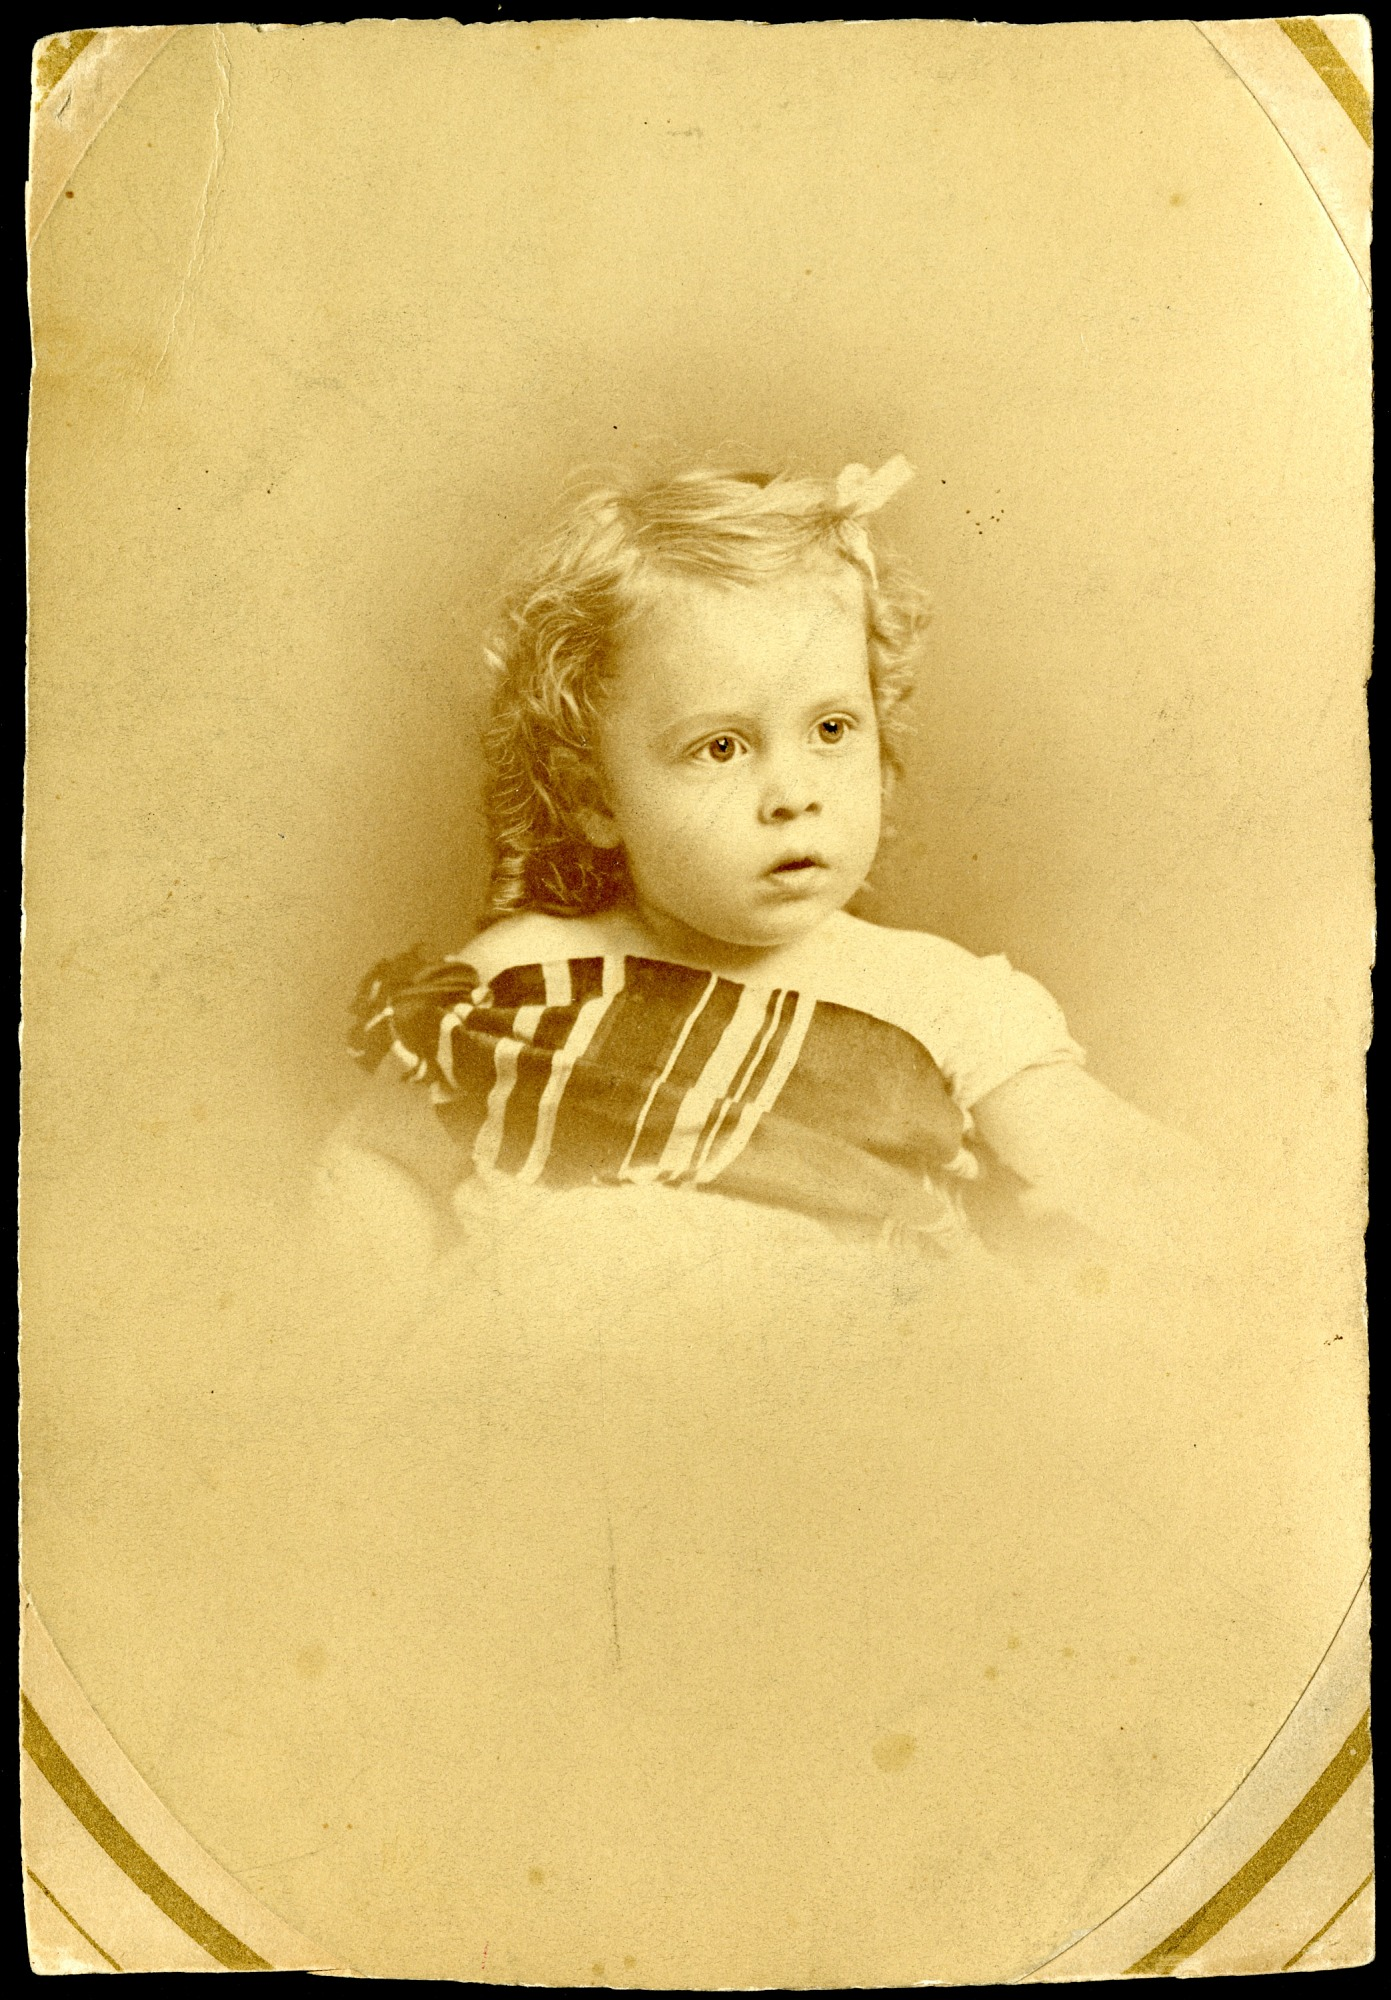 One of Joseph Henry's Daughters as a Child